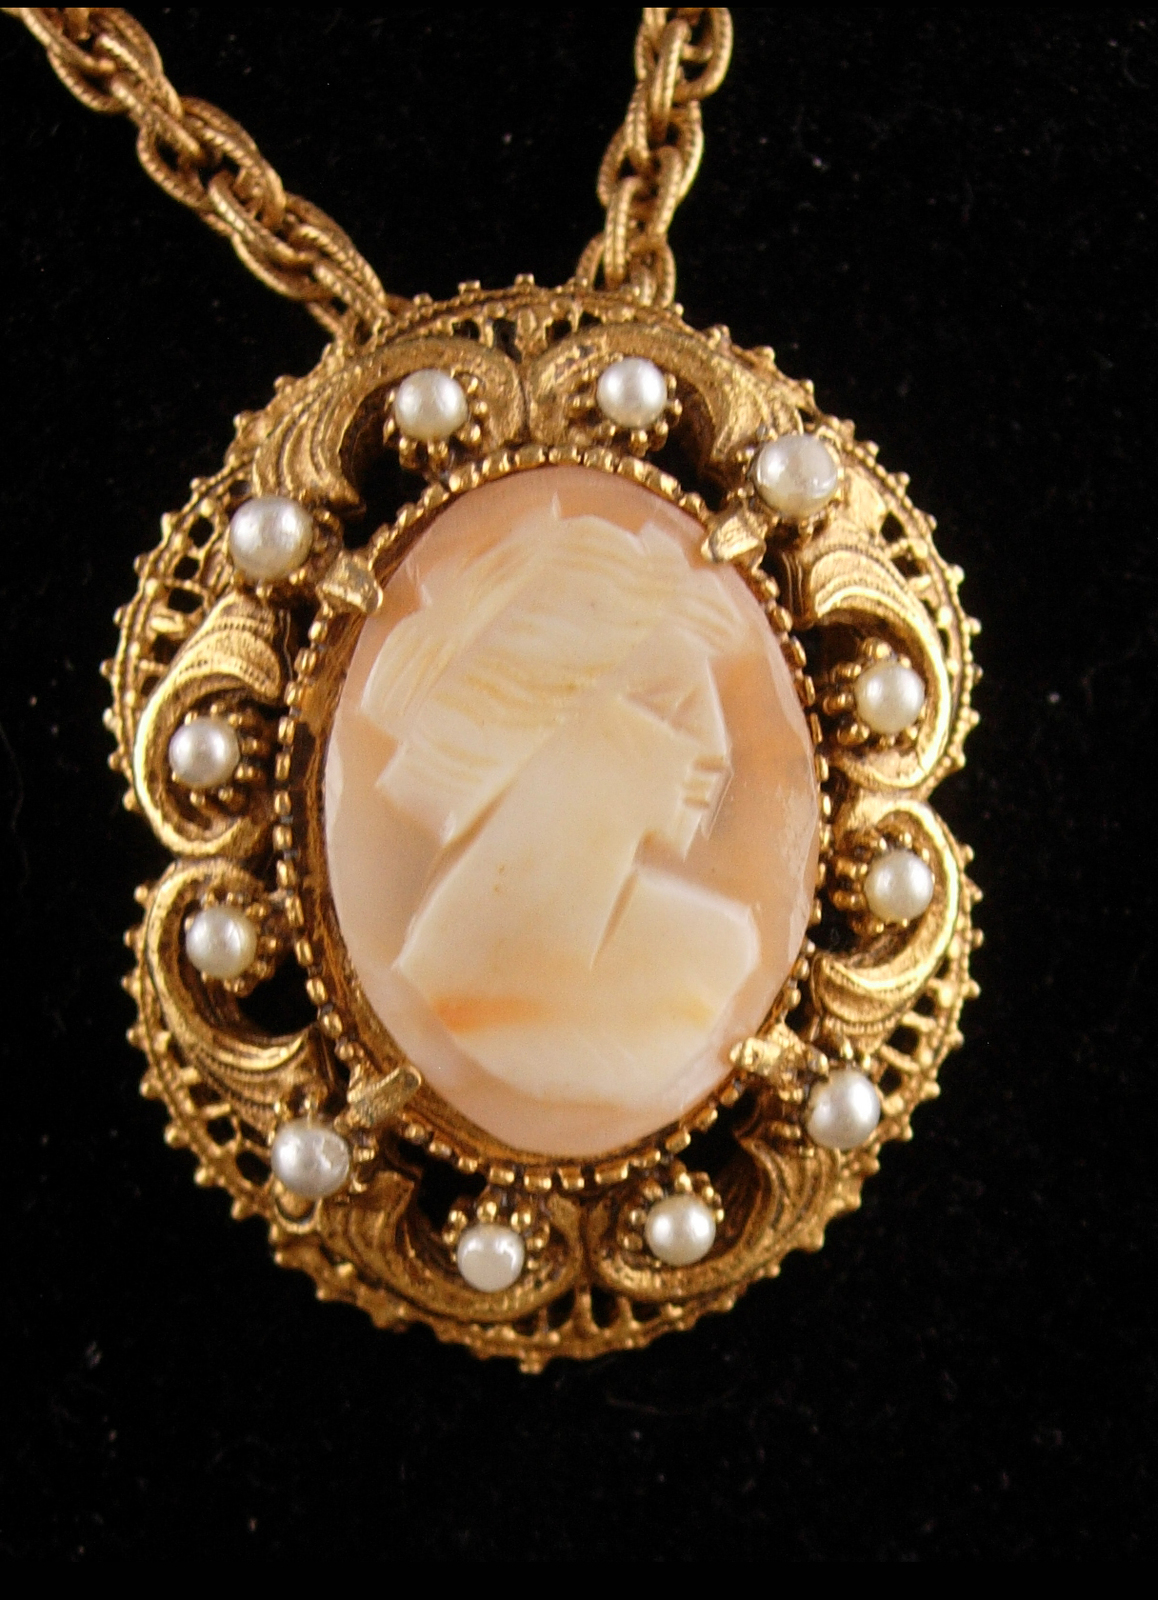 Detachable Cameo necklace - Florenza carved cameo brooch  - Edwardian style pend